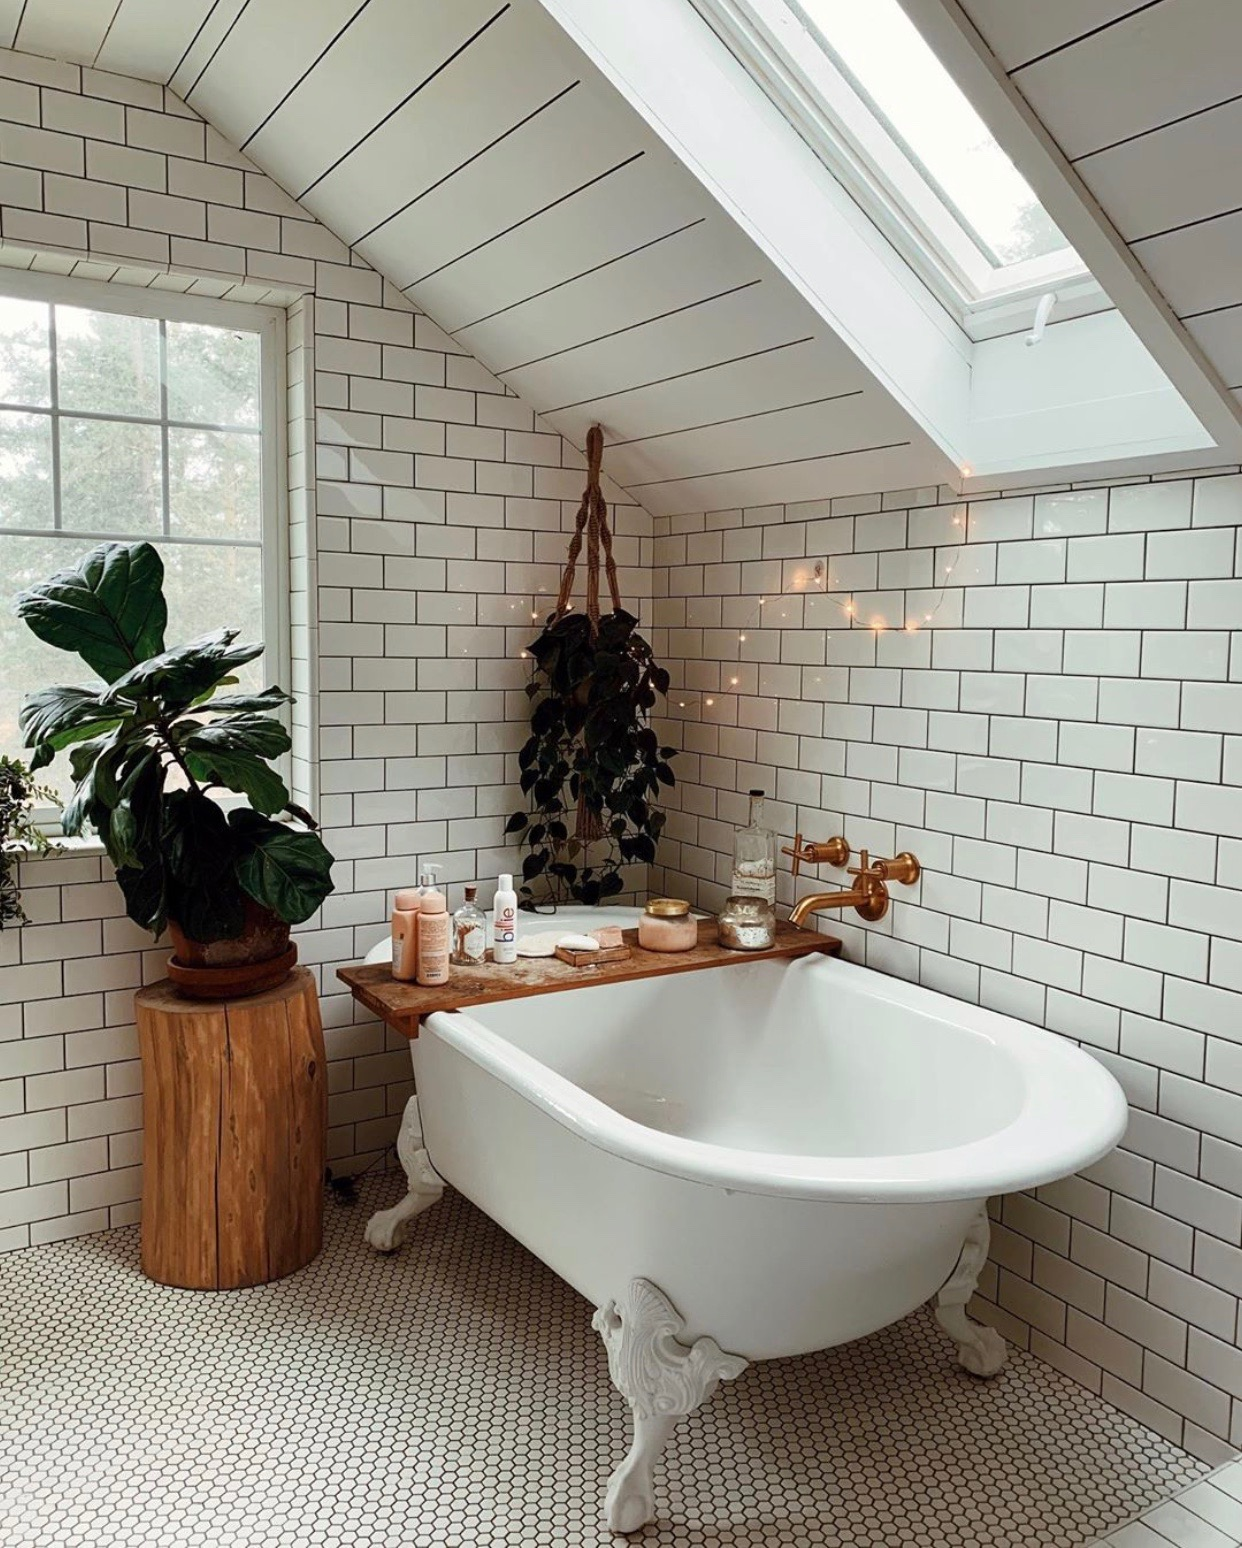 Dreamy Vintage Bungalow Style Bathroom... that subway tile/skylight combo is DREAMY! #vintage #farmhousebathroom #bathroomreno #fixerupper